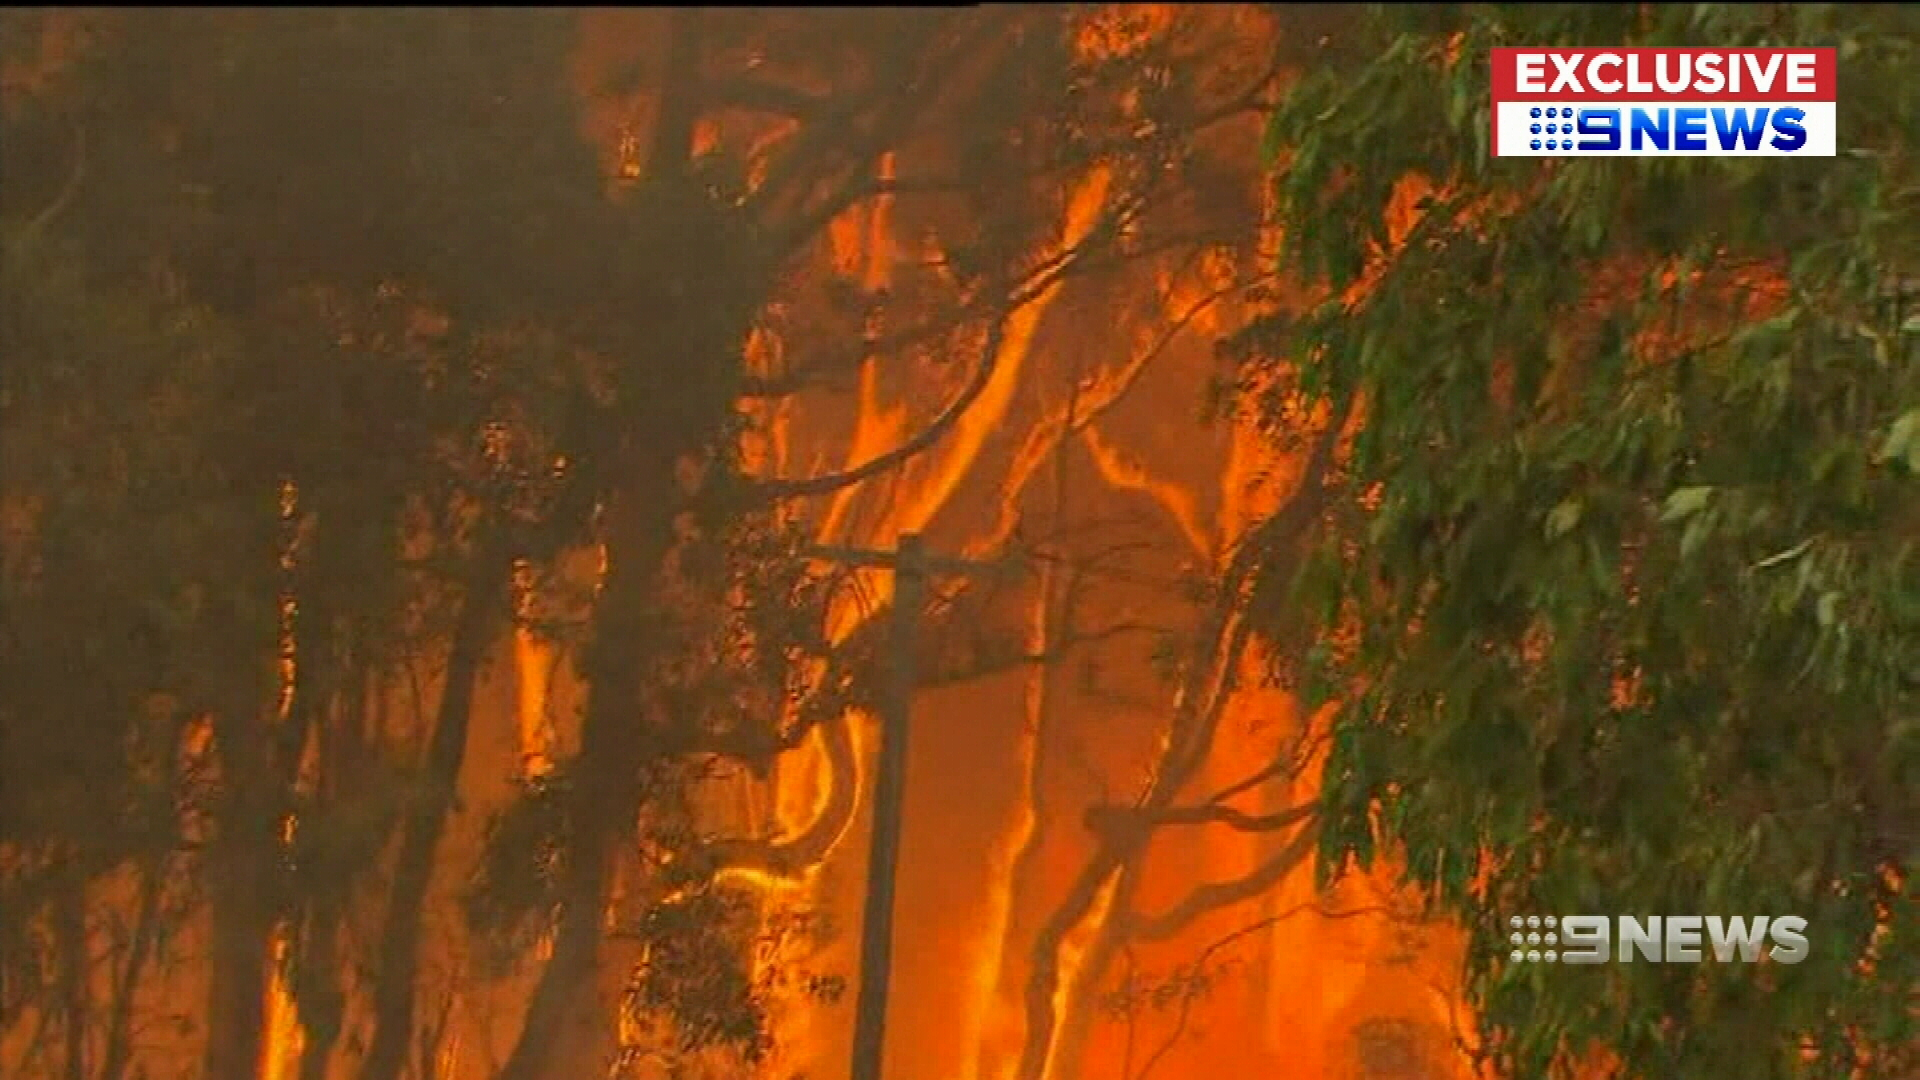 Western Power blames bushfire victim for power pole blaze